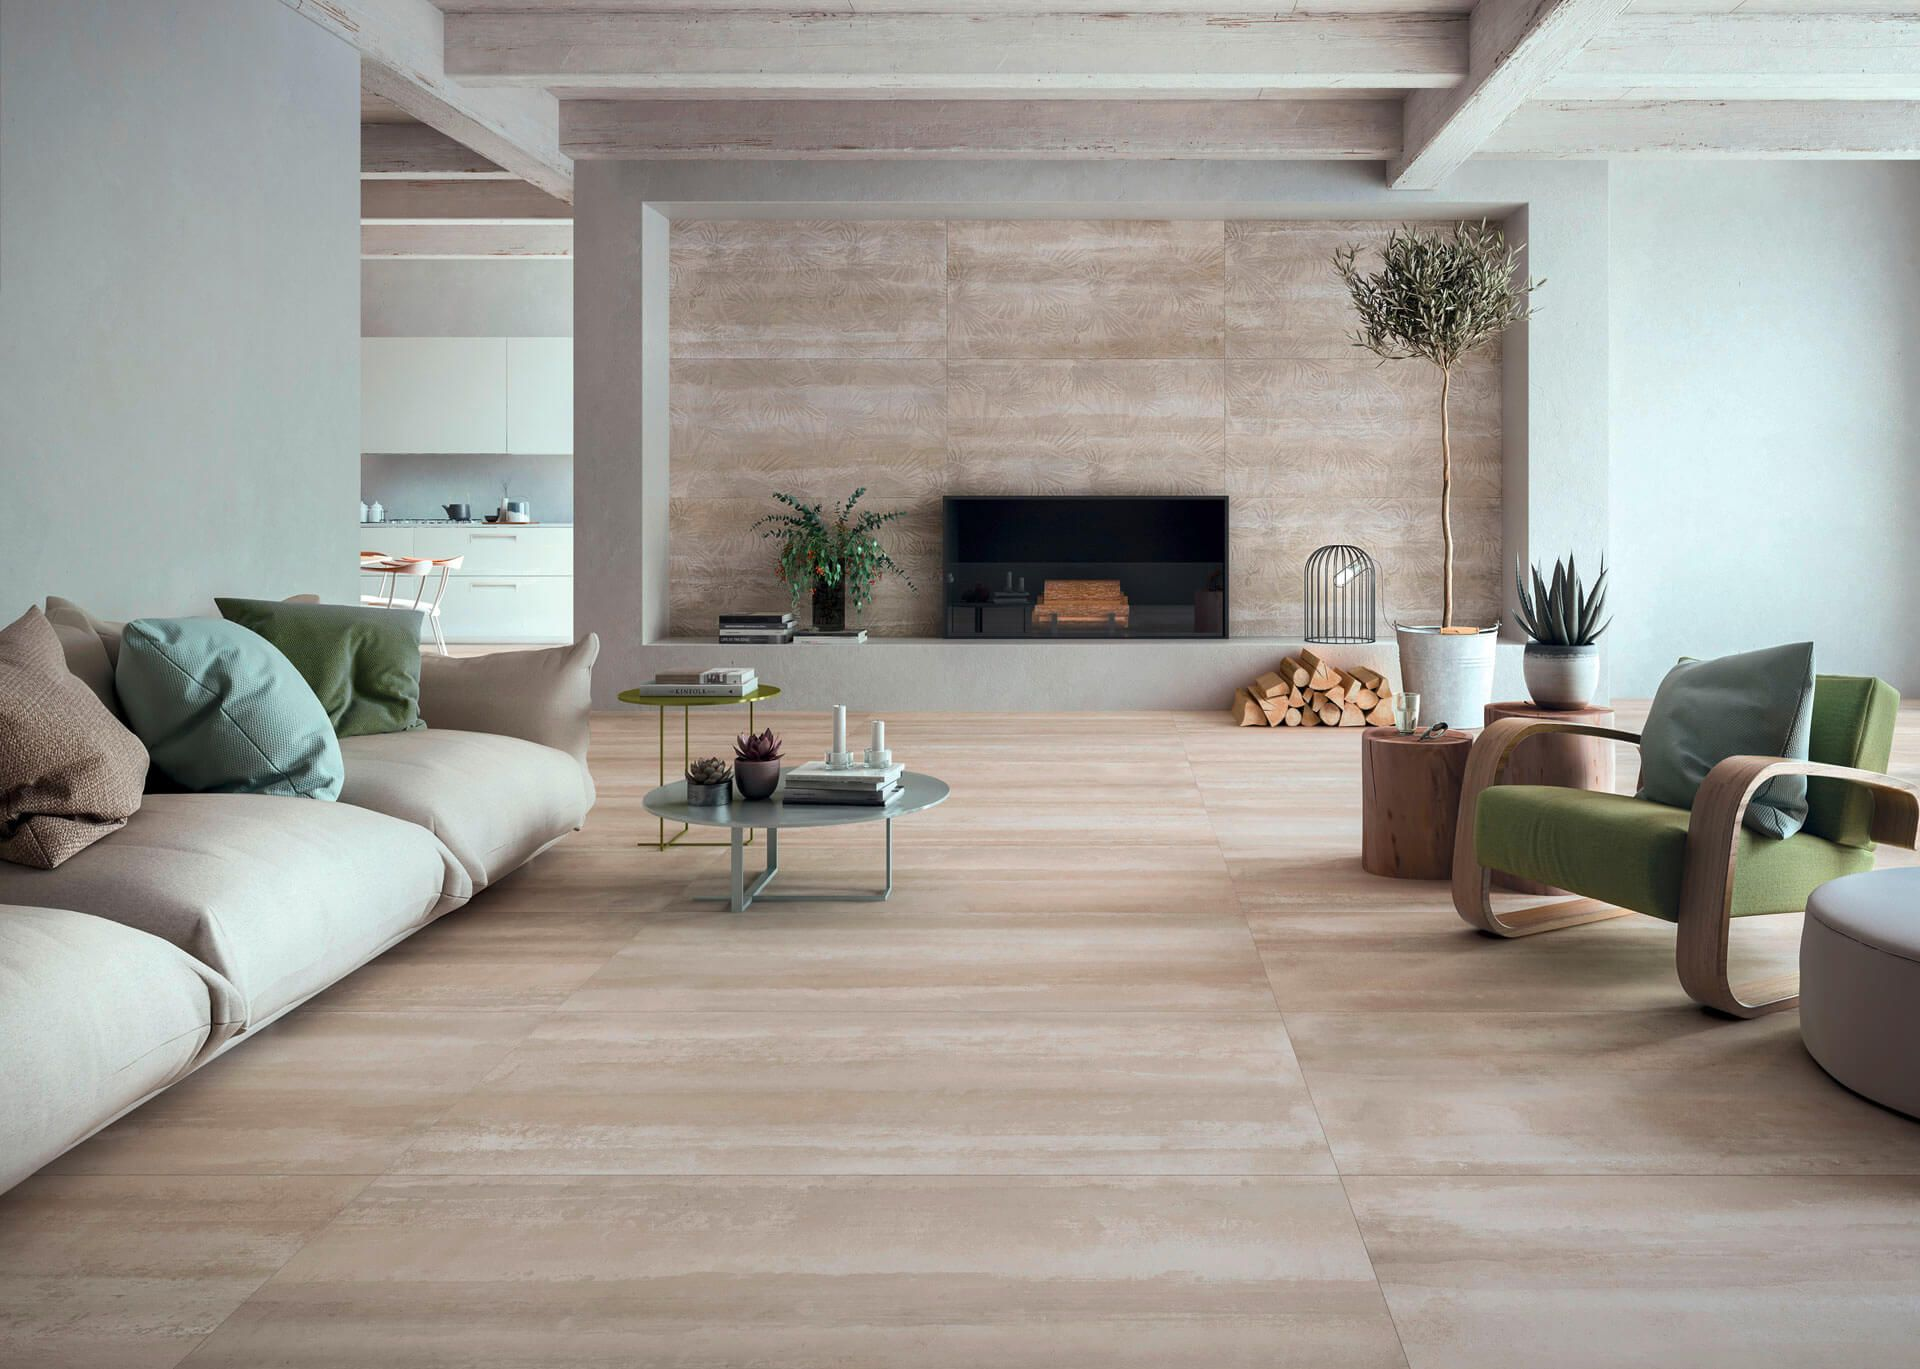 Ceramiche refin paints depth into porcelain with its new collection